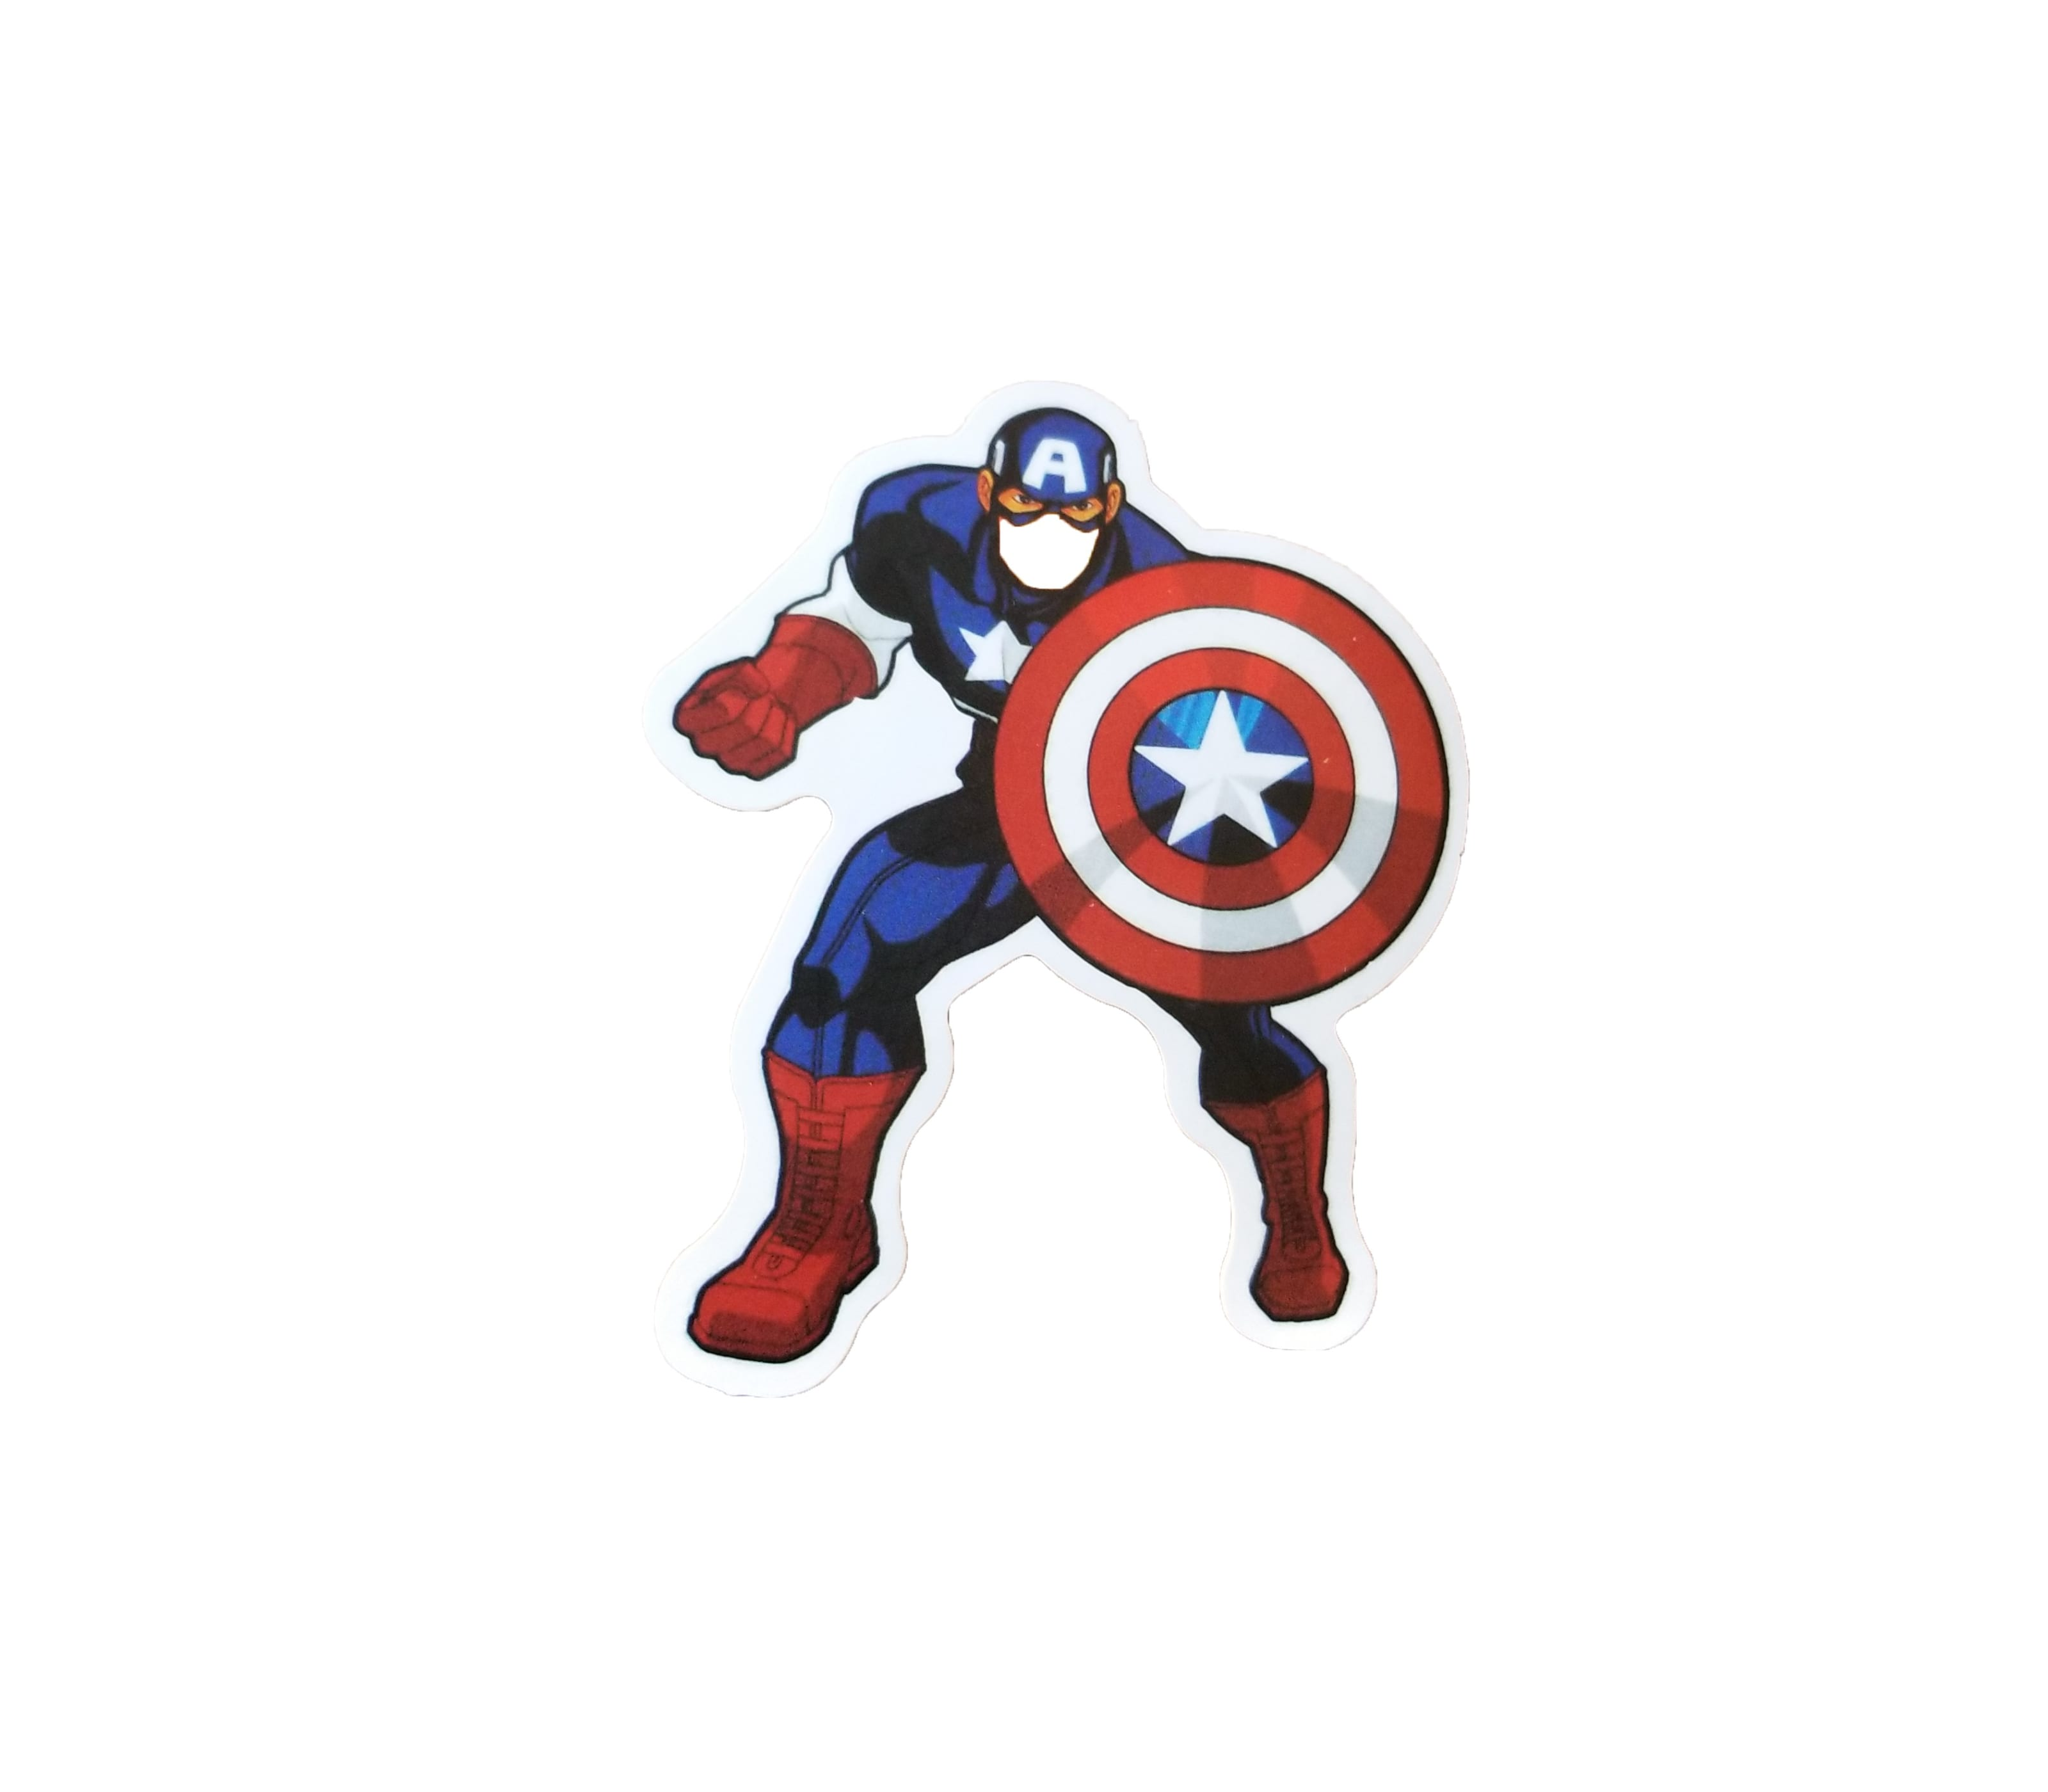 captain america holding his shield in defense mode